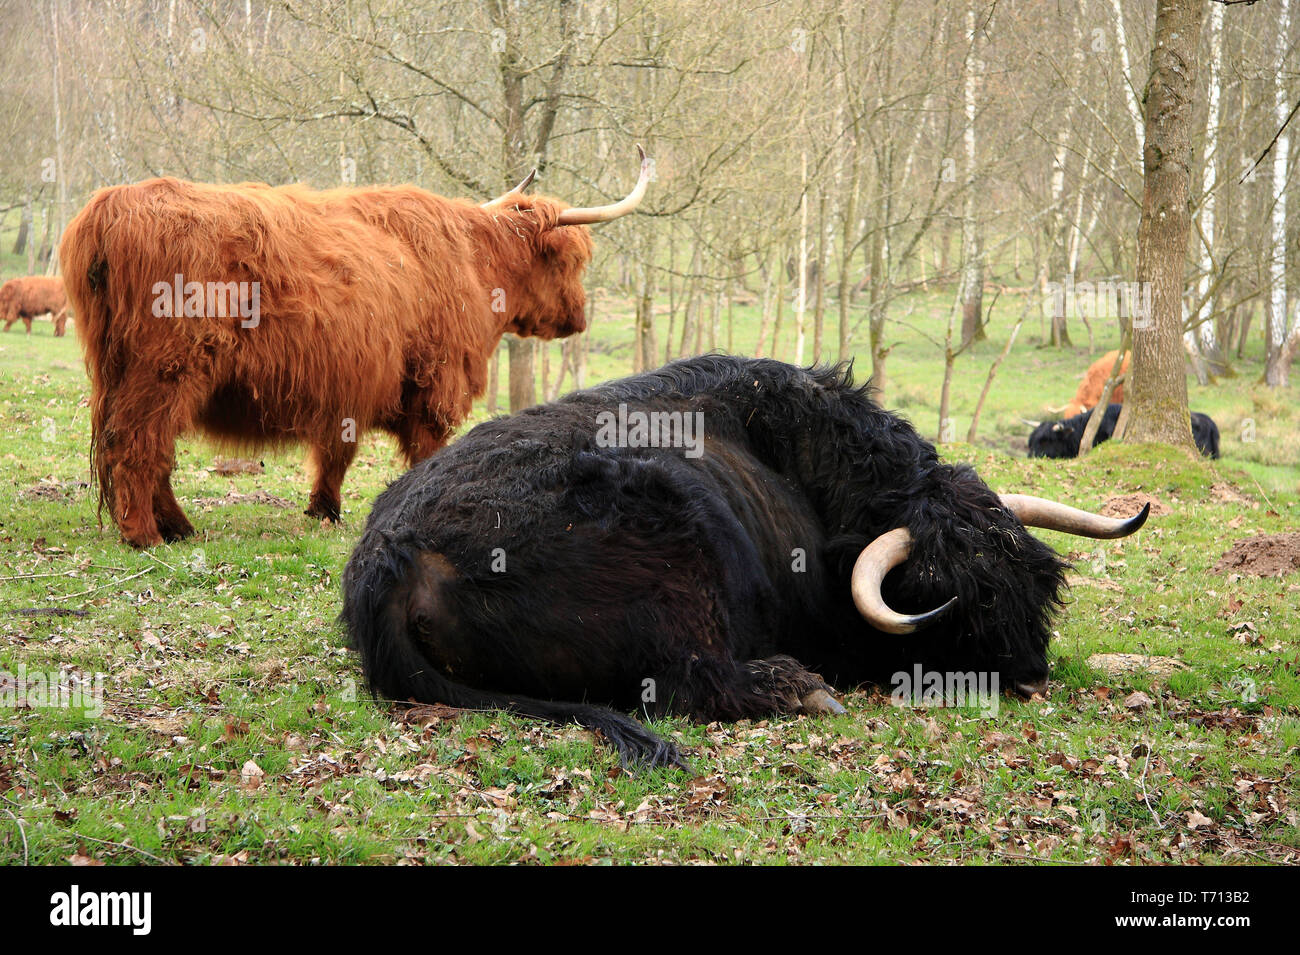 Siesta with the scottish highland cattle - Stock Image